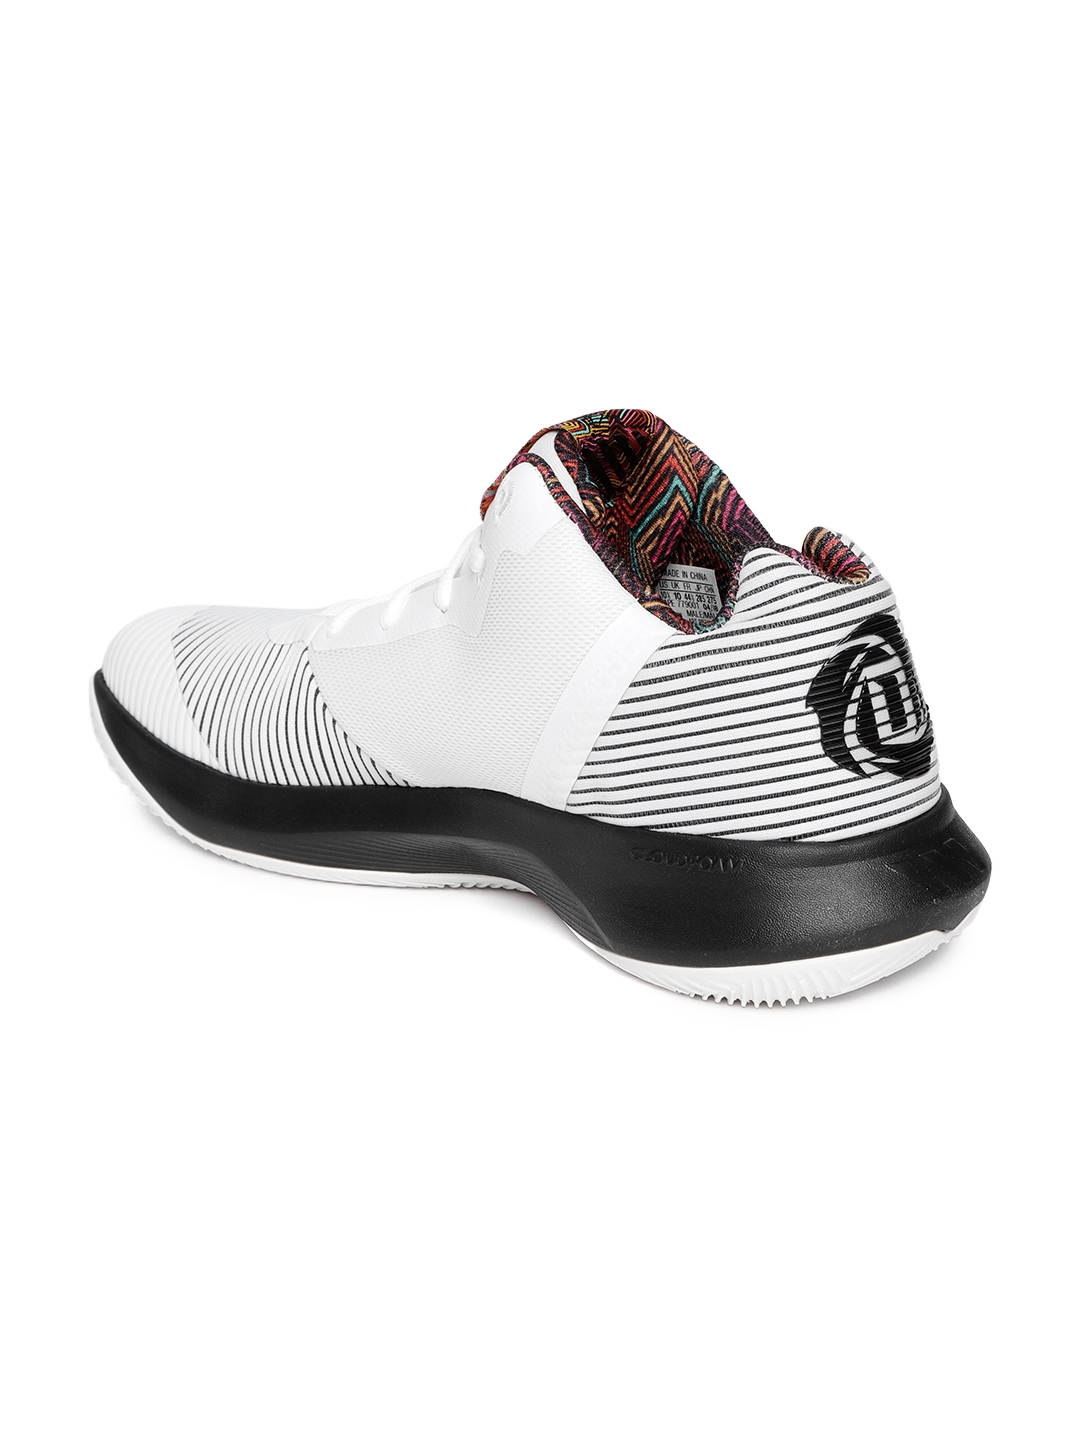 2811f1b87060 Buy ADIDAS Men White   Black D Rose Lethality Basketball Shoes ...